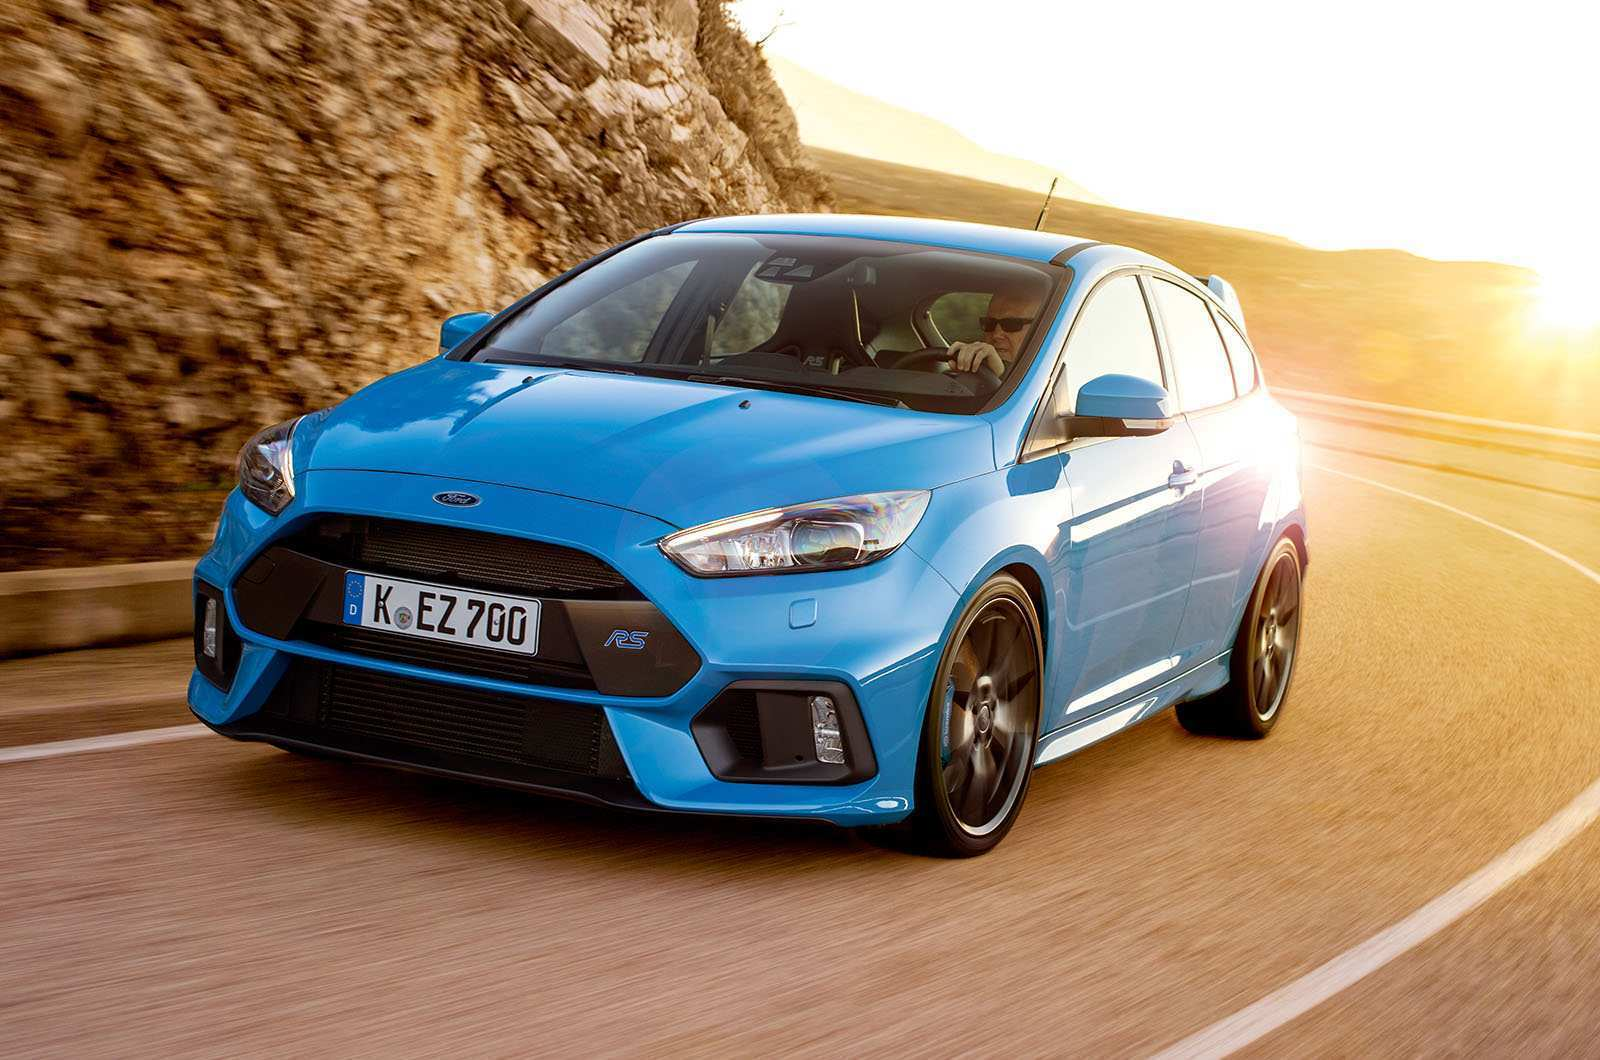 73 Concept of 2020 Fiesta St Pictures with 2020 Fiesta St